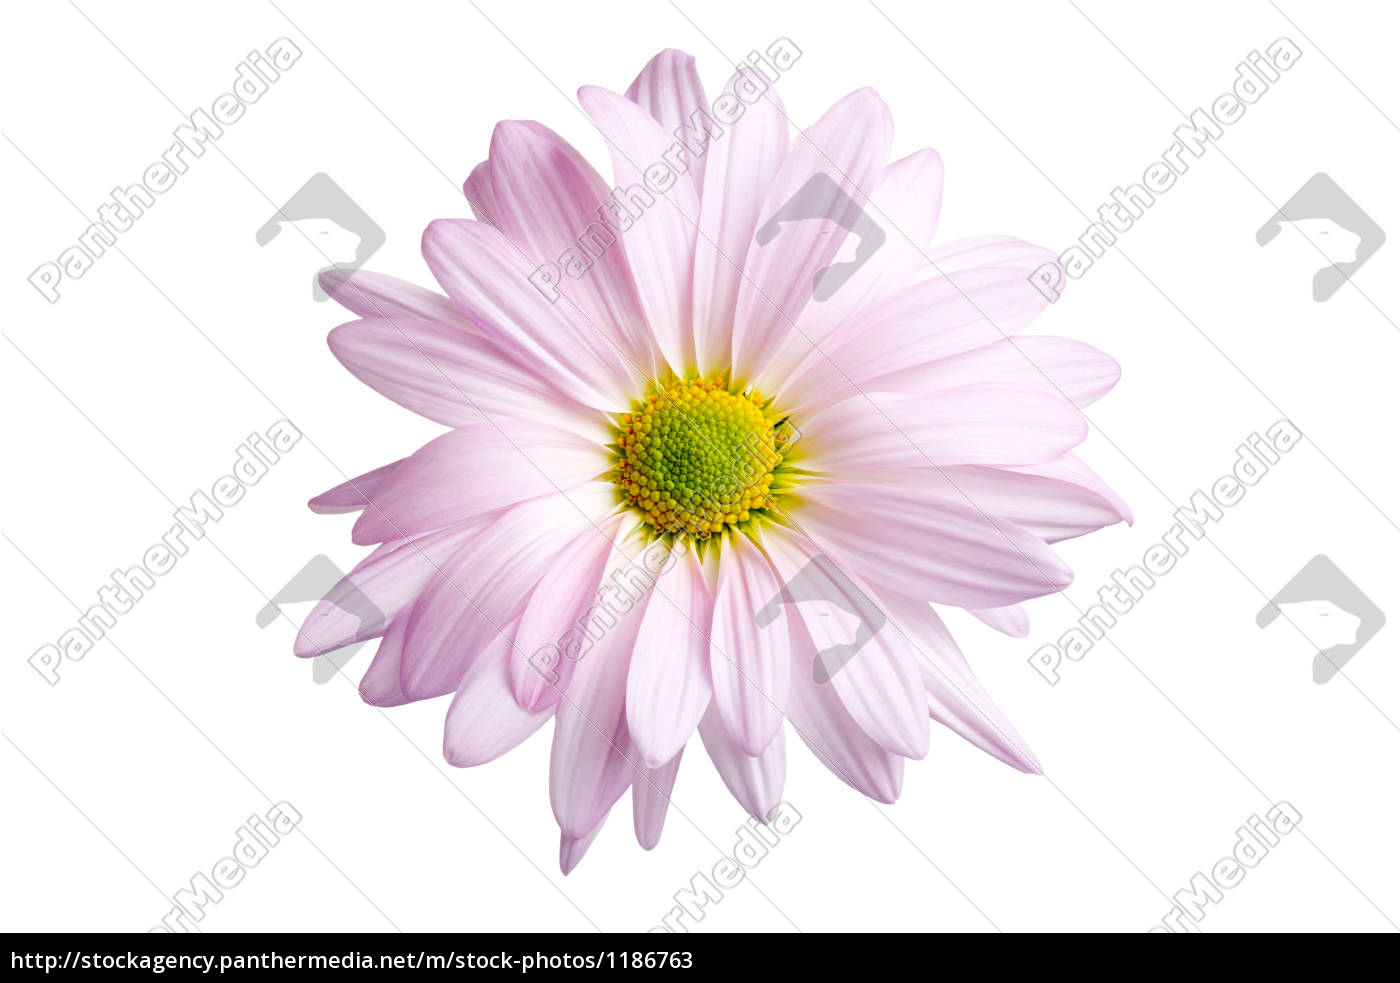 macro, close-up, macro admission, close up view, isolated, flower - 1186763